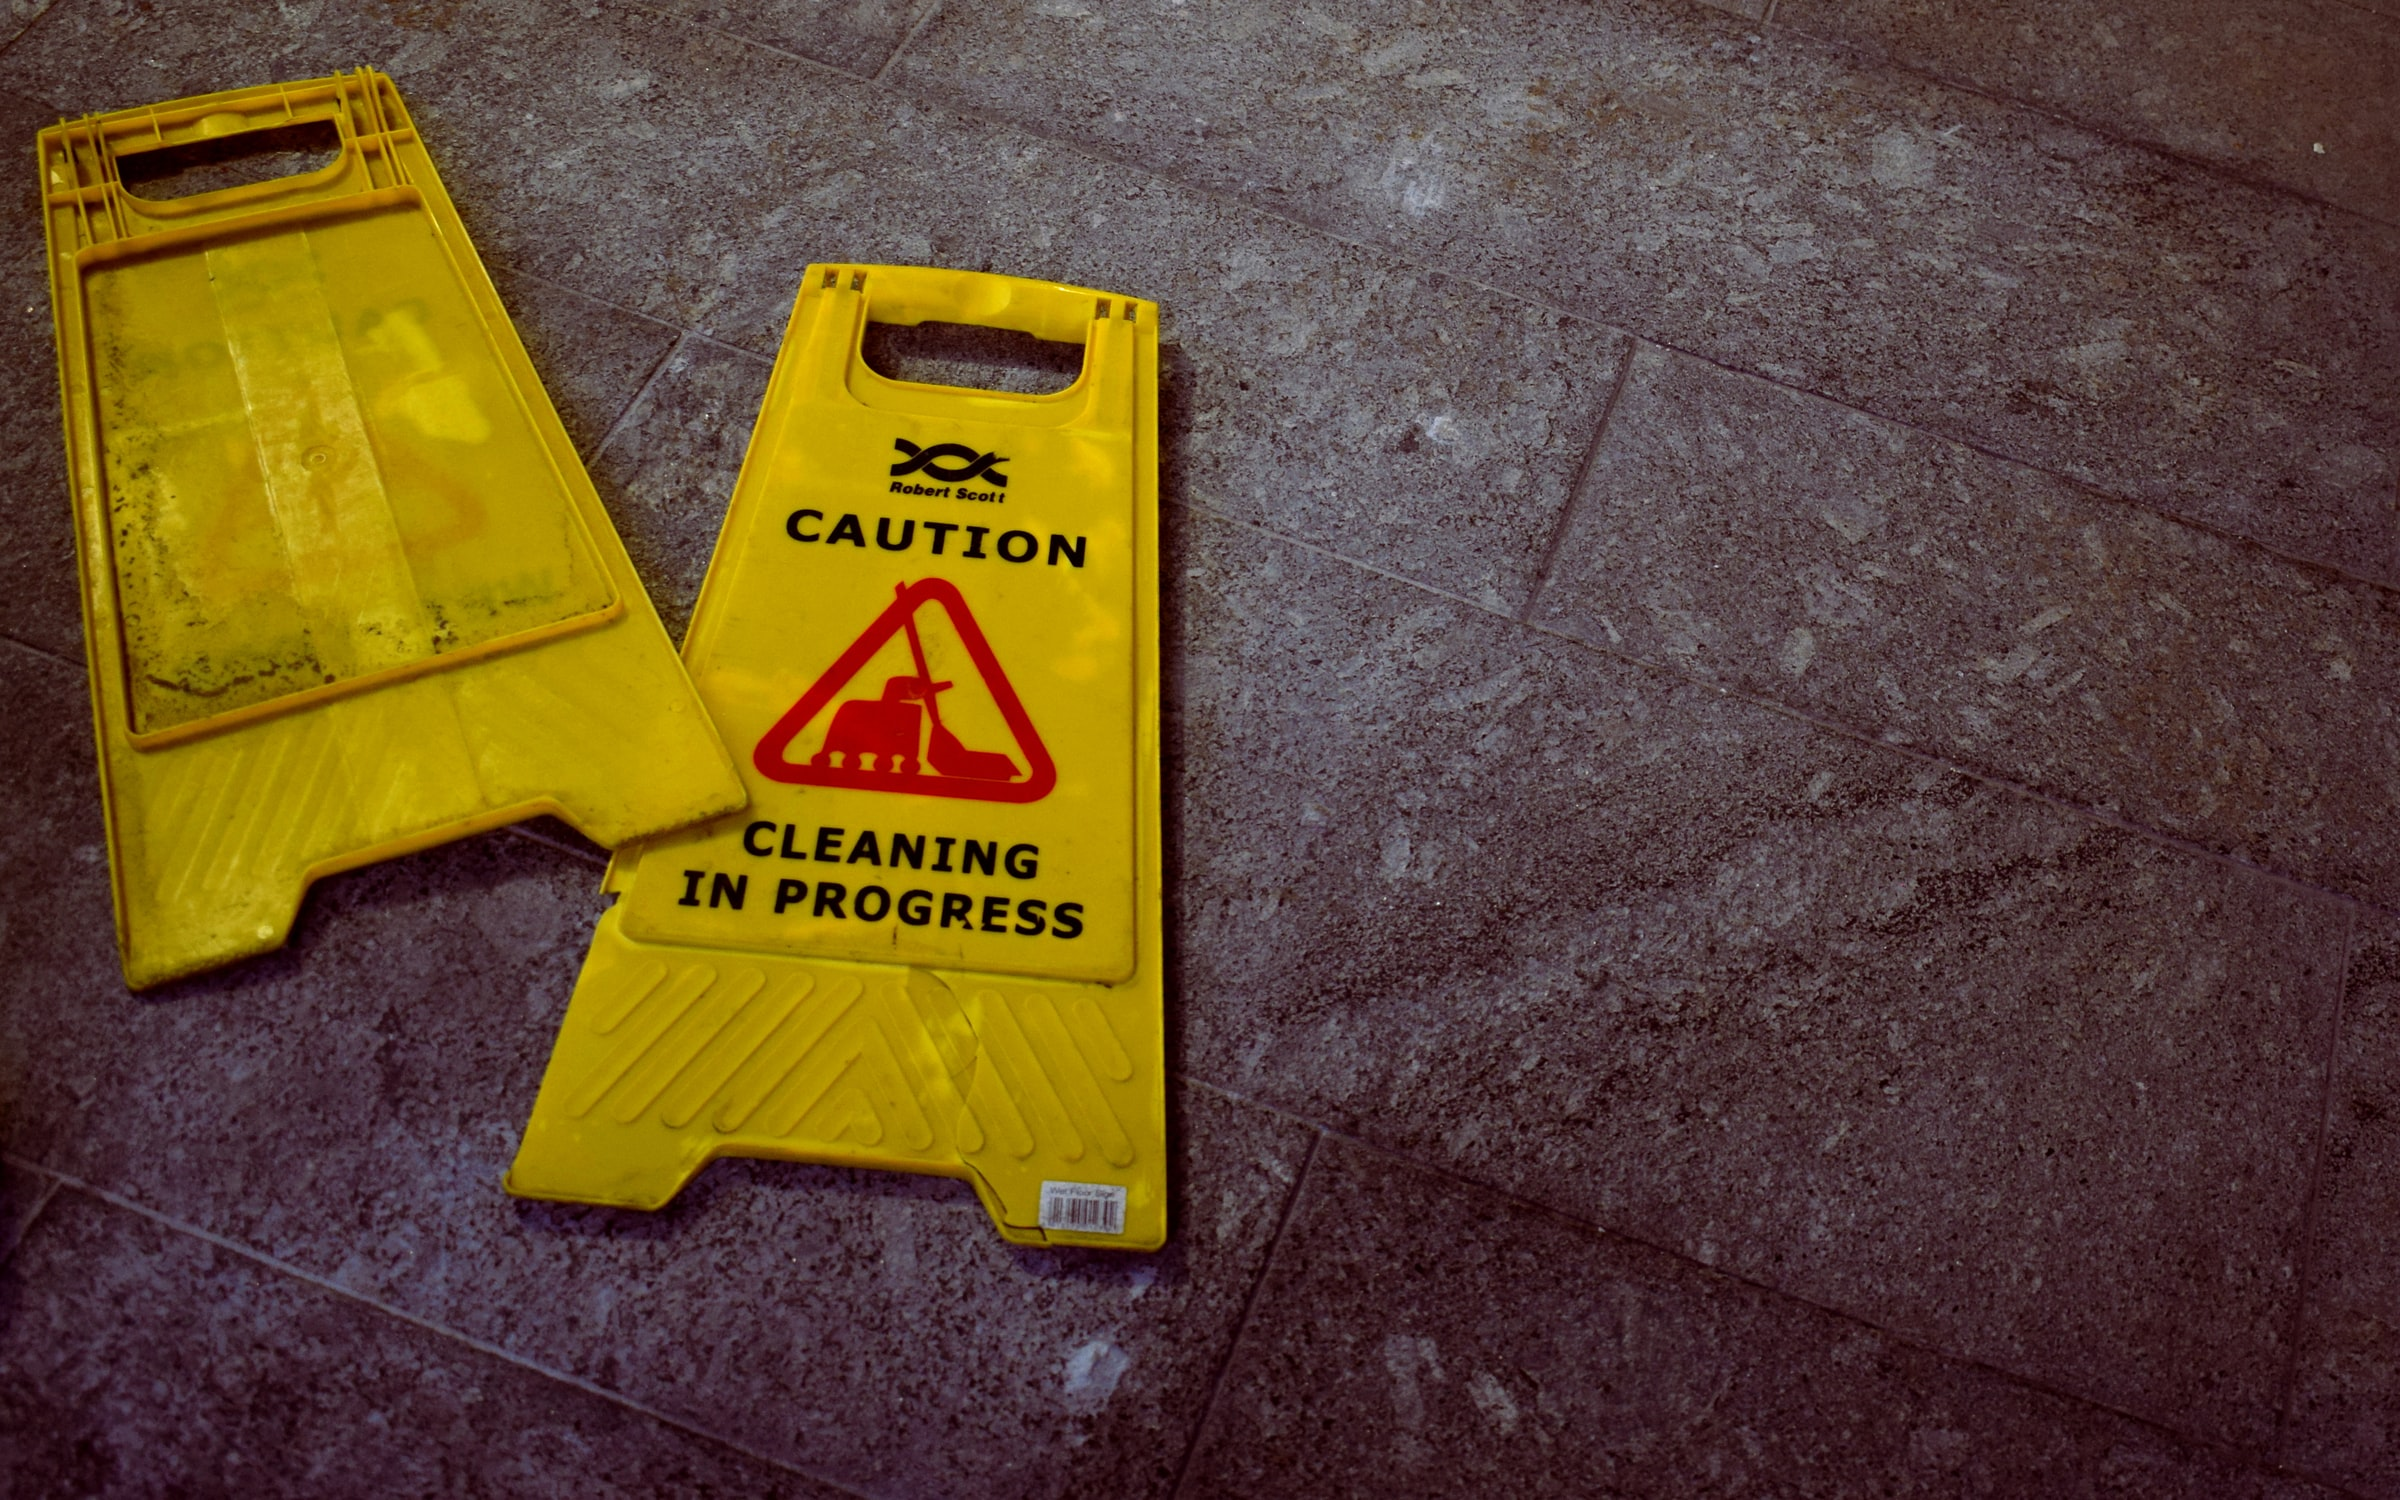 Cleaning in progress sign. Photo by @4themorningshoot via Unsplash